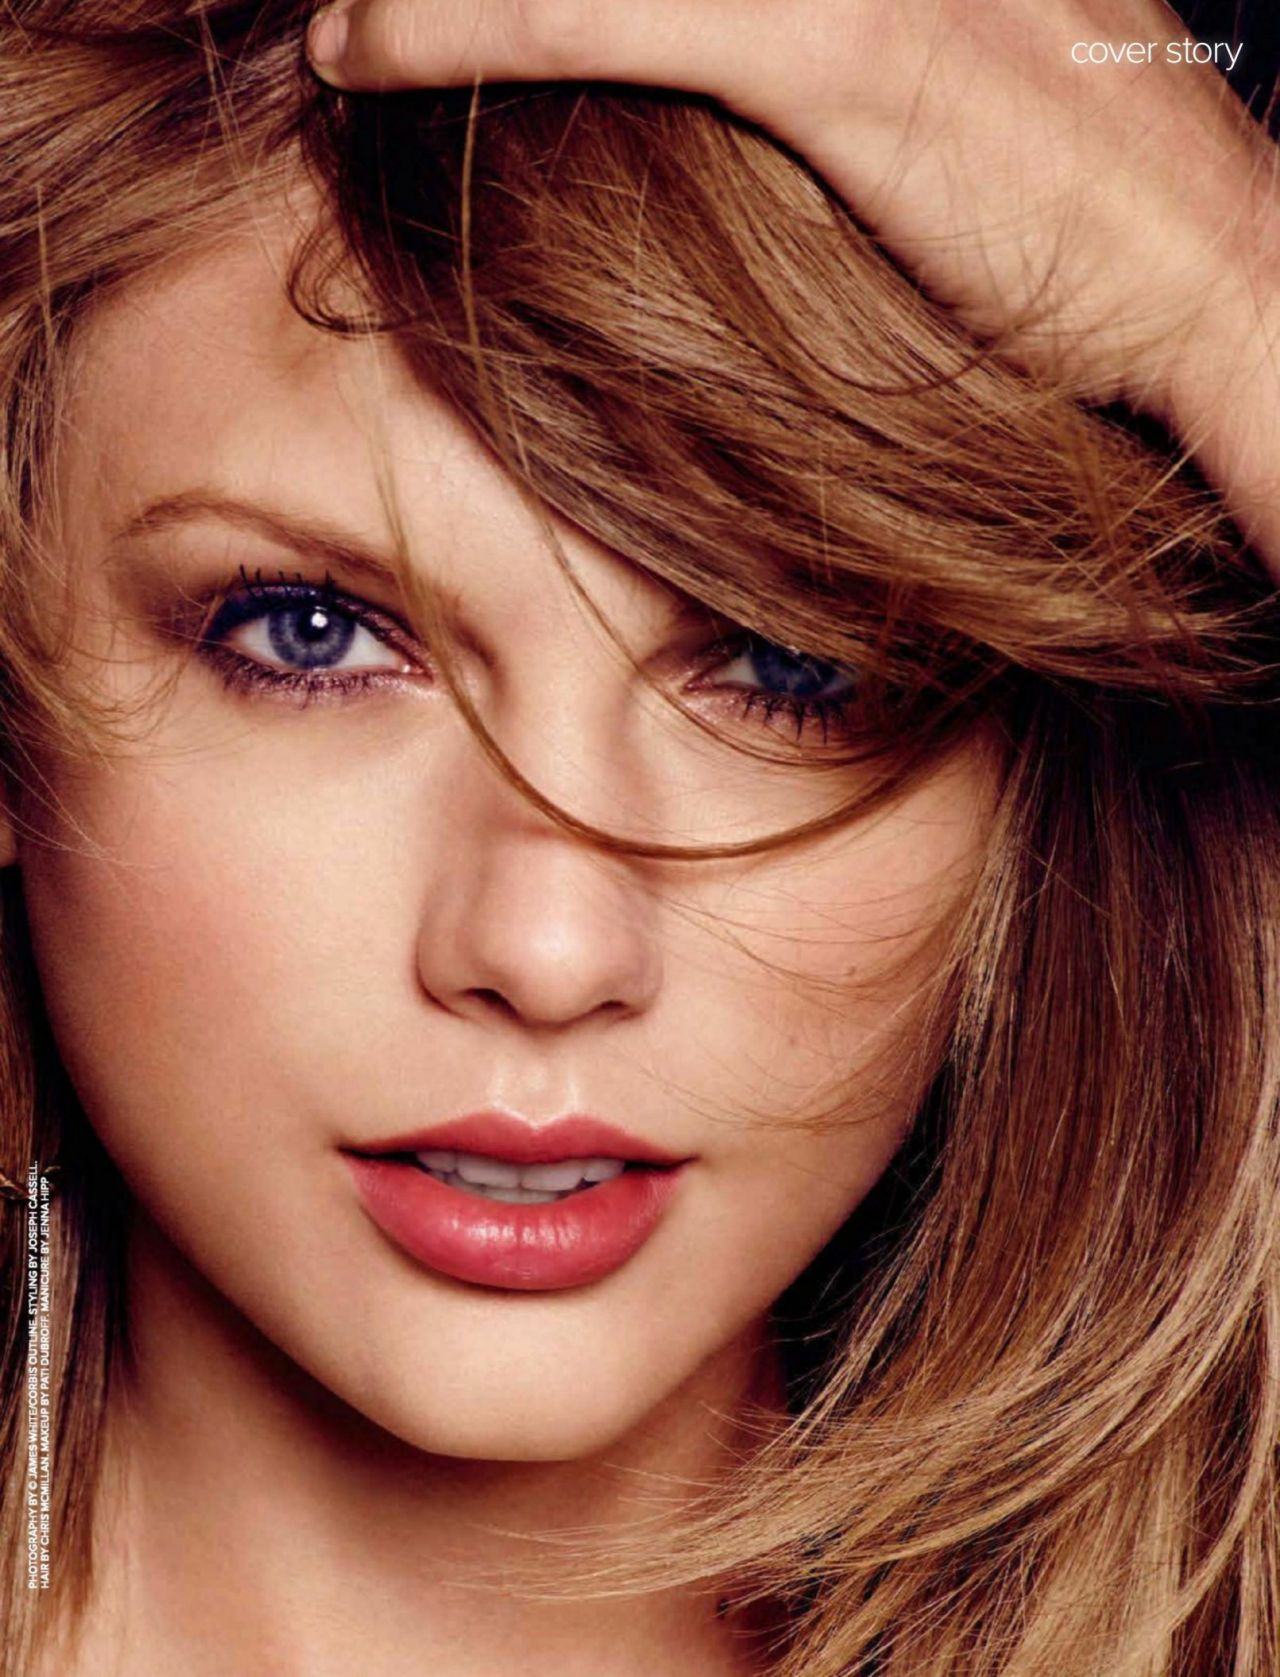 taylor swift - photo #5